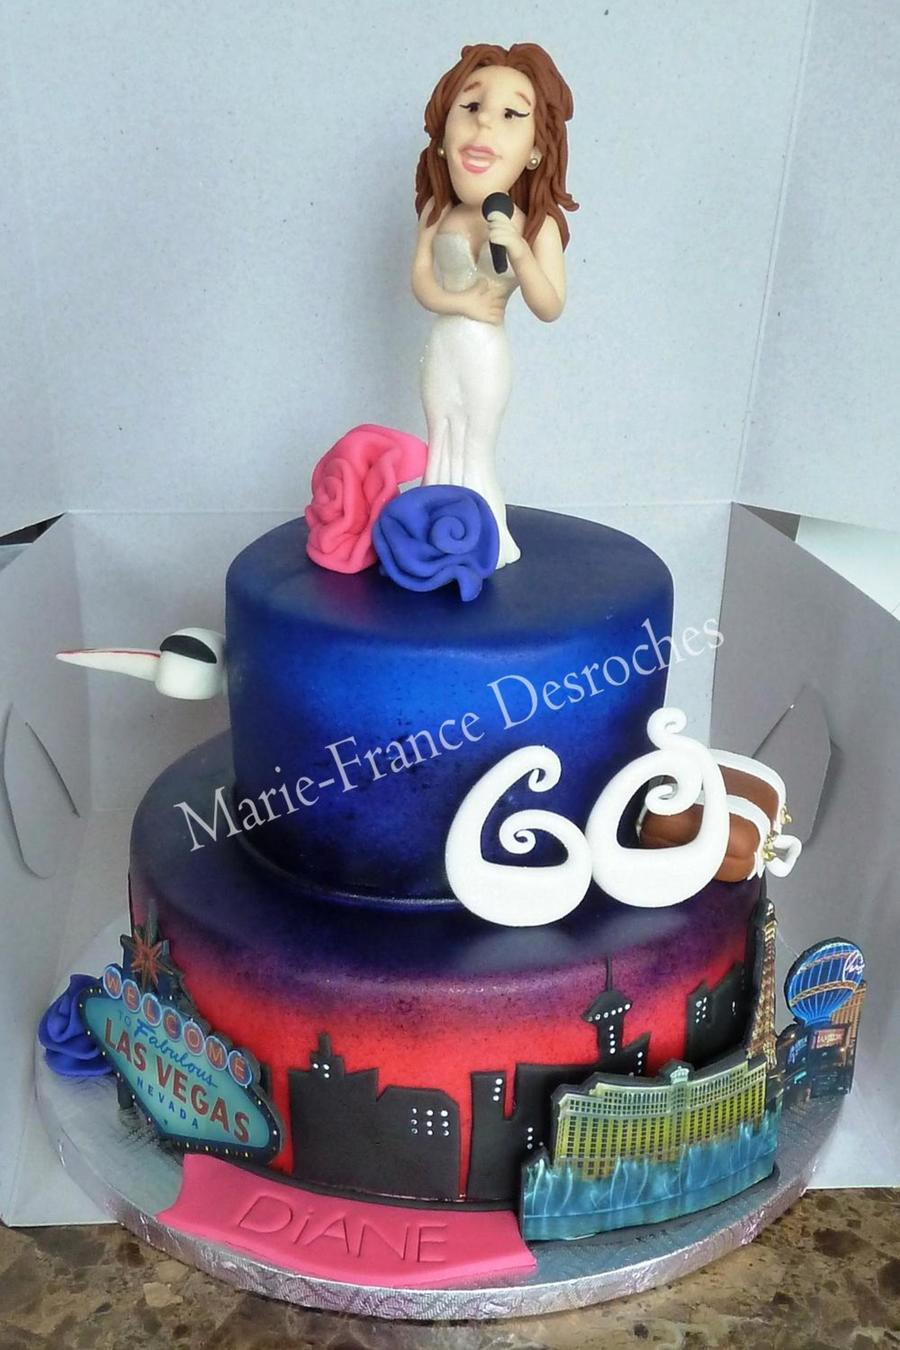 Las Vegas And Celine Dion Themed Birthday Cake First Time